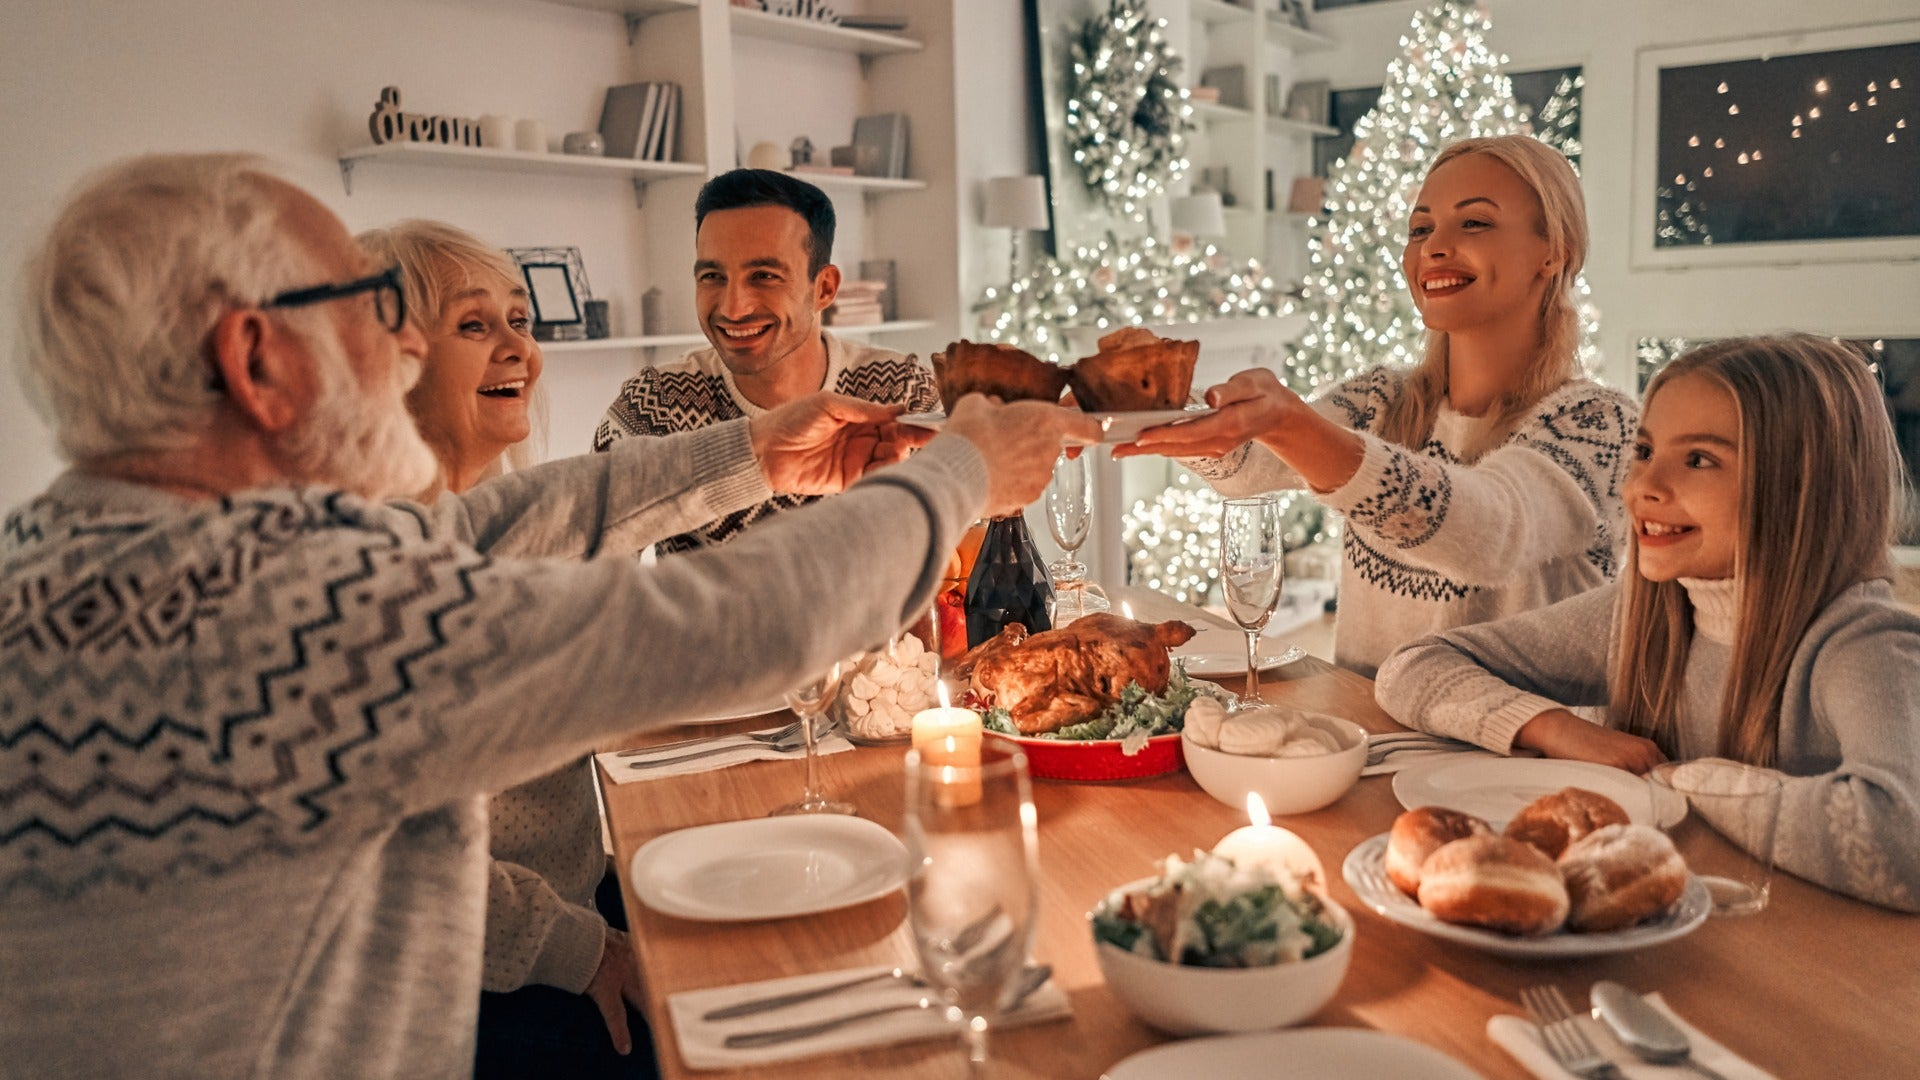 5 ways to keep your food safe this holiday season